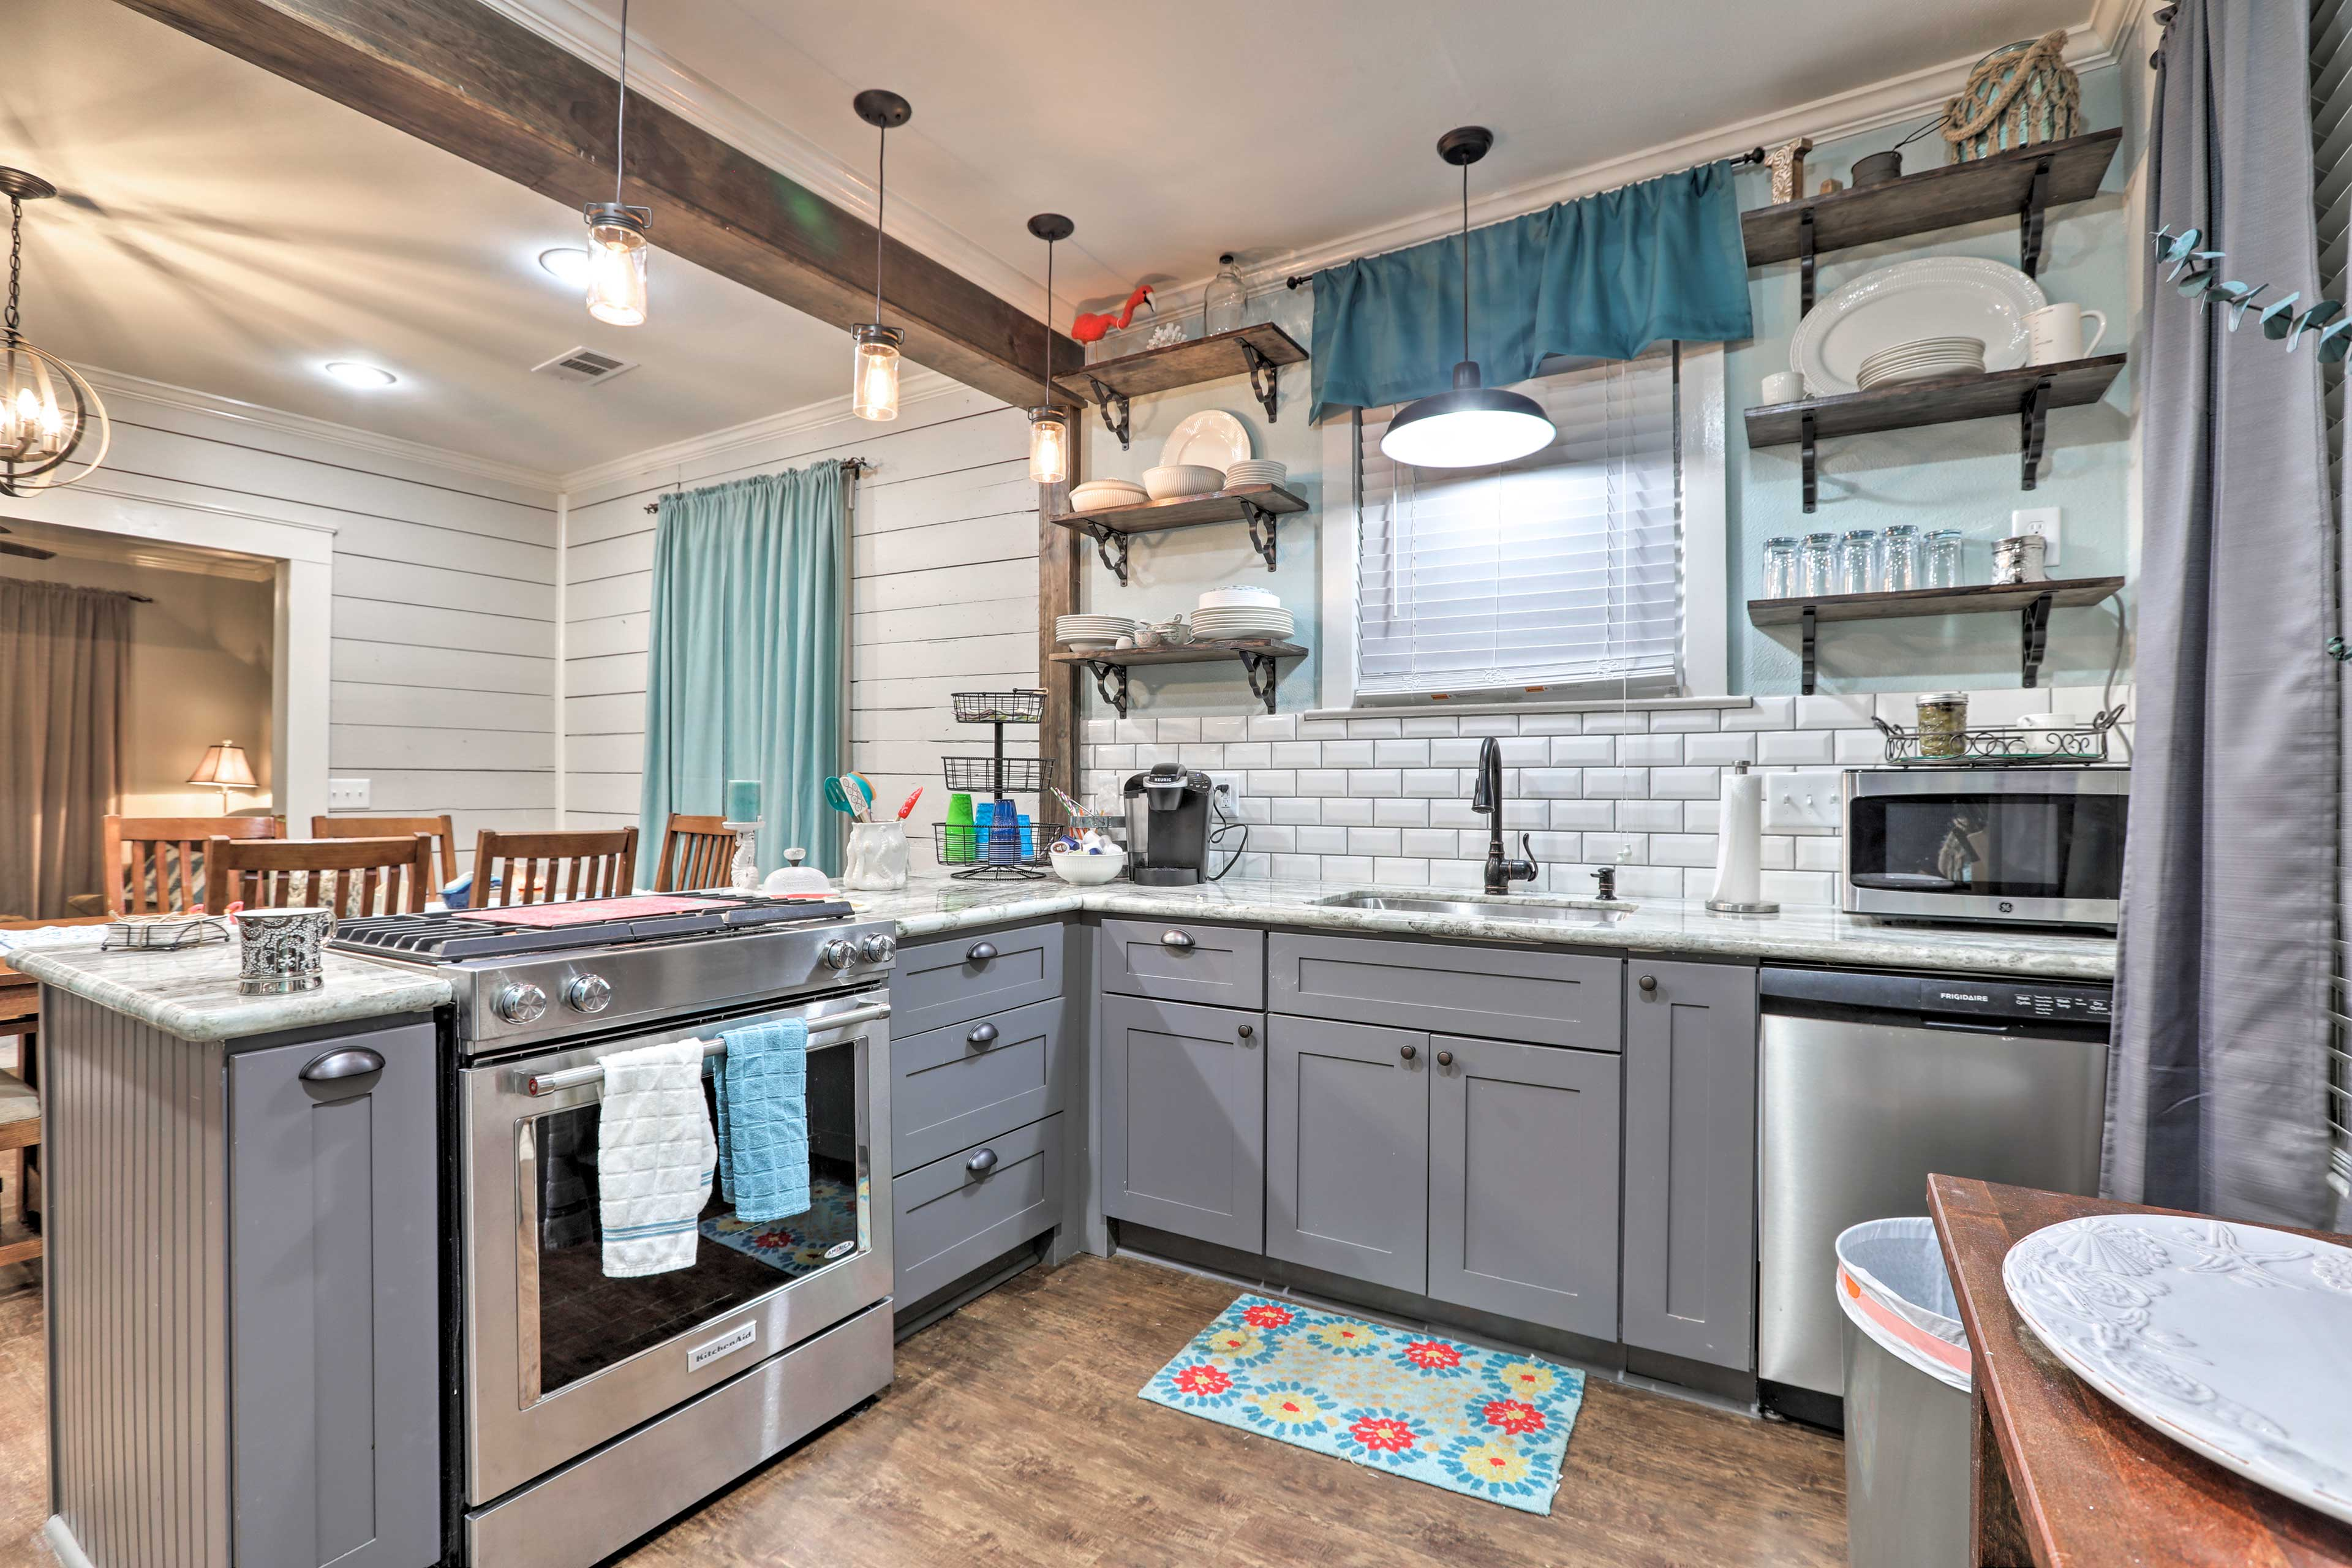 You'll find everything you need in this fully equipped kitchen.